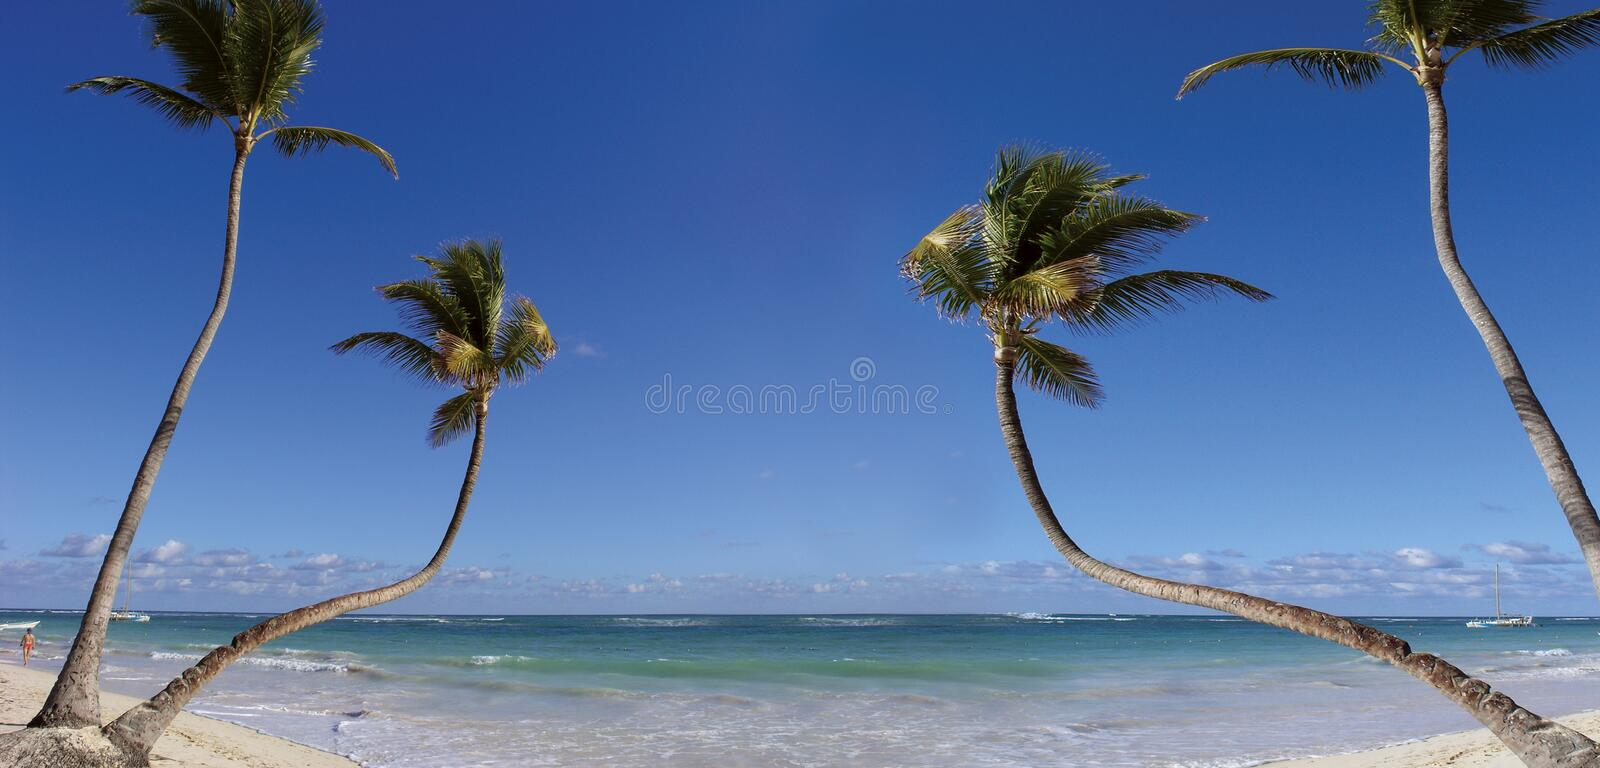 Plage photographie stock